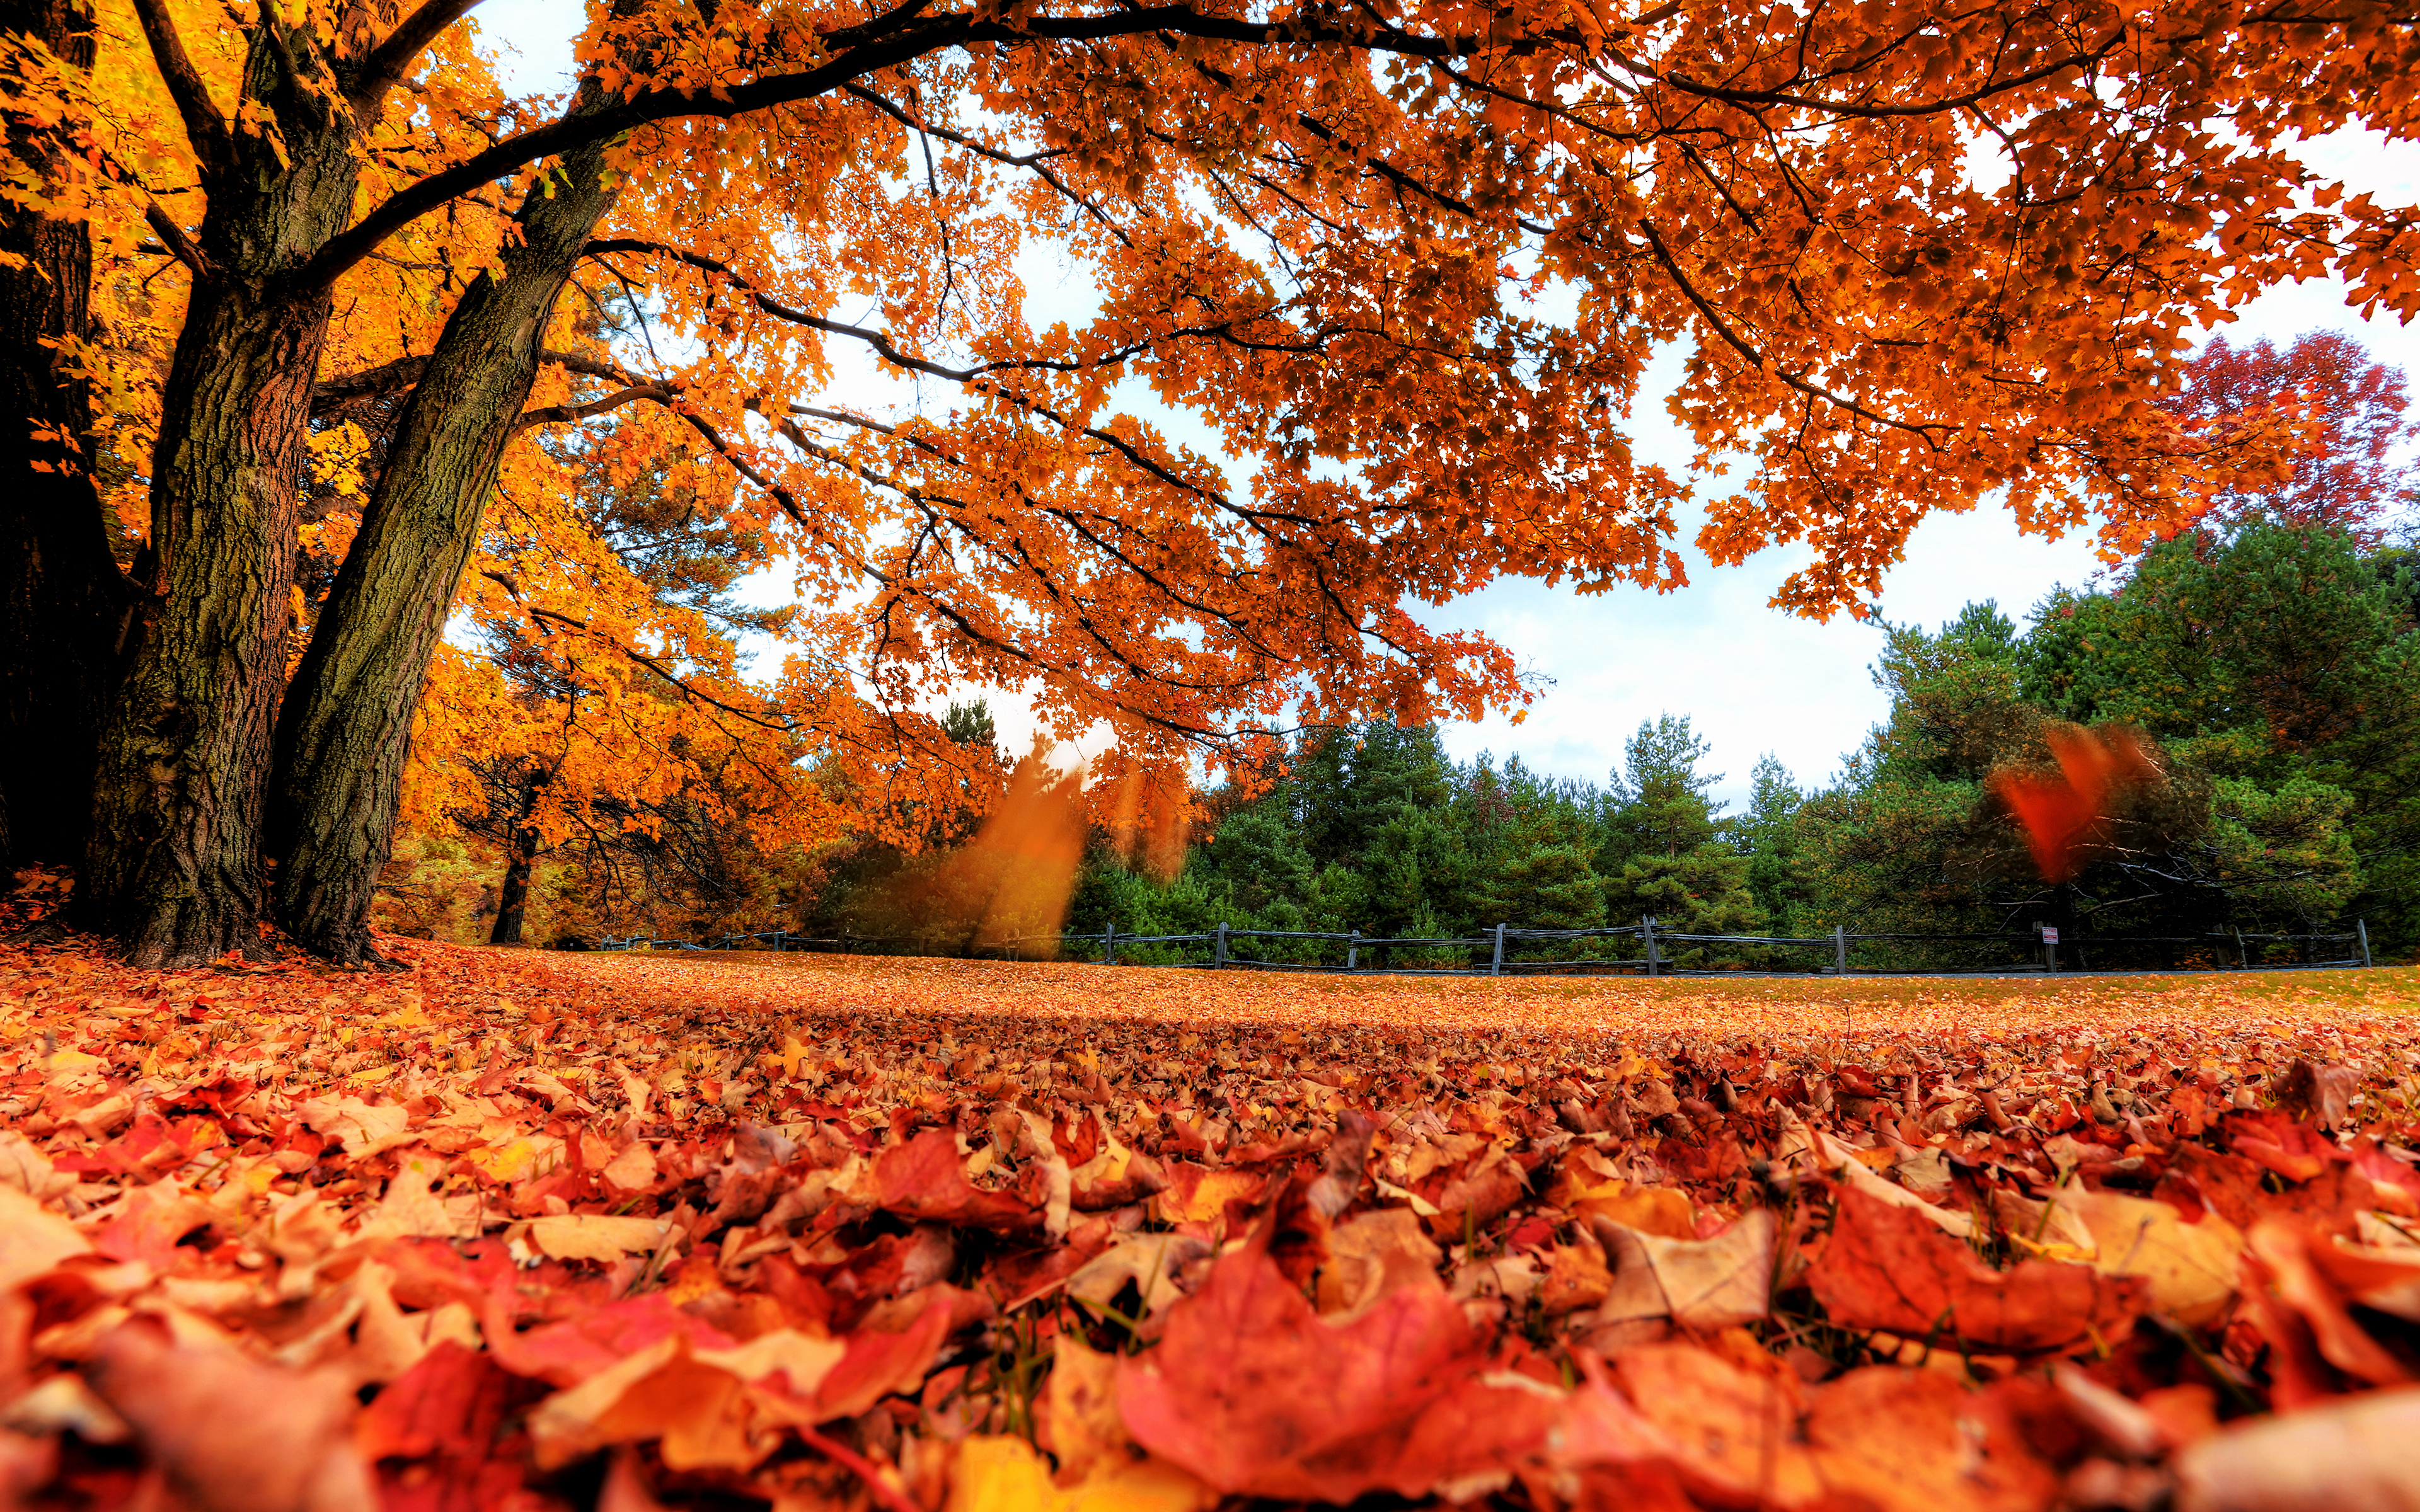 Beauty of autumn nature wallpapers and images - wallpapers, pictures ...